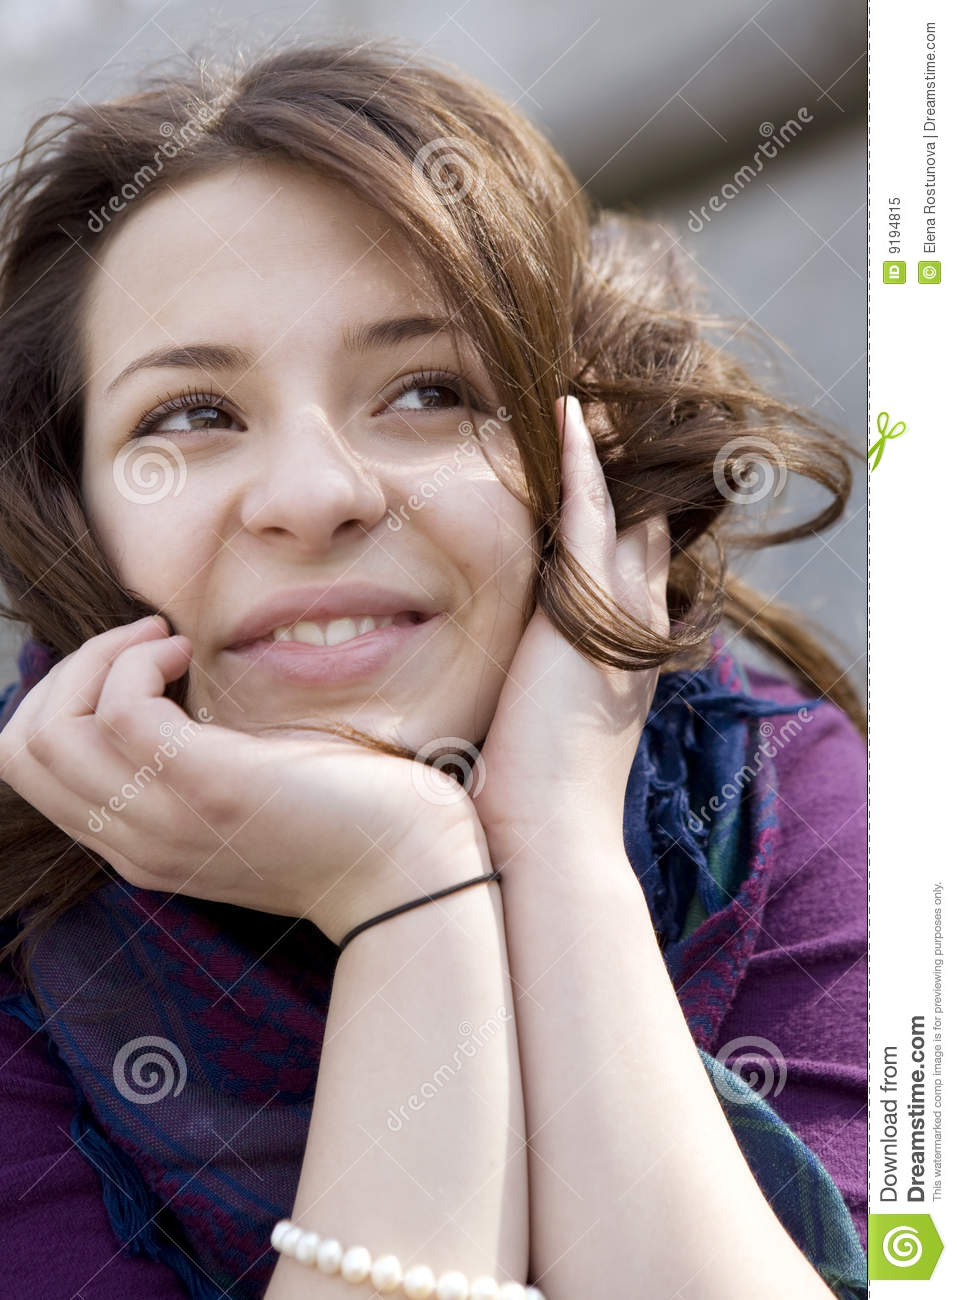 Happy Teen By Crumbling Wall Stock Image: Portrait Happy Young Smiling Girl Royalty Free Stock Photo